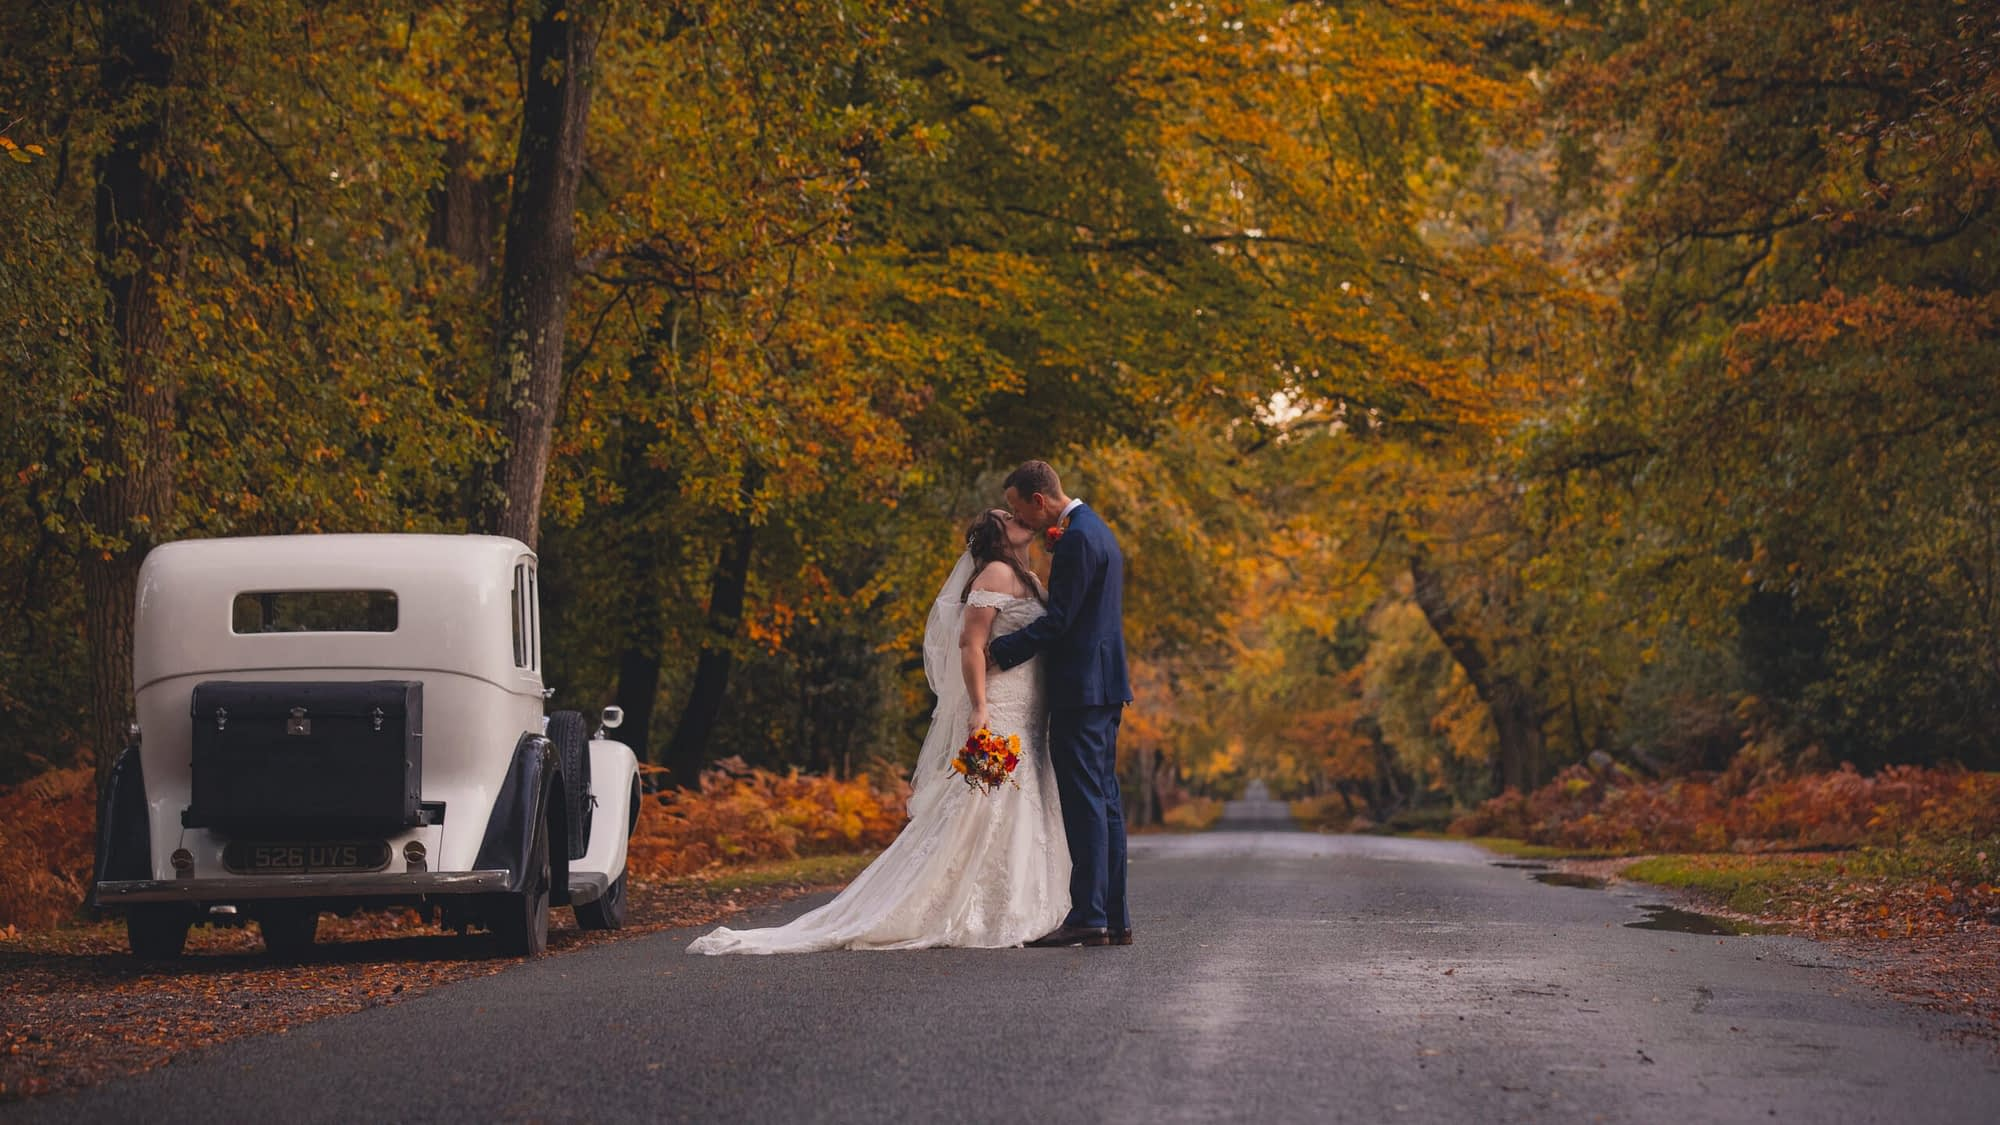 couple kissing in road with trees